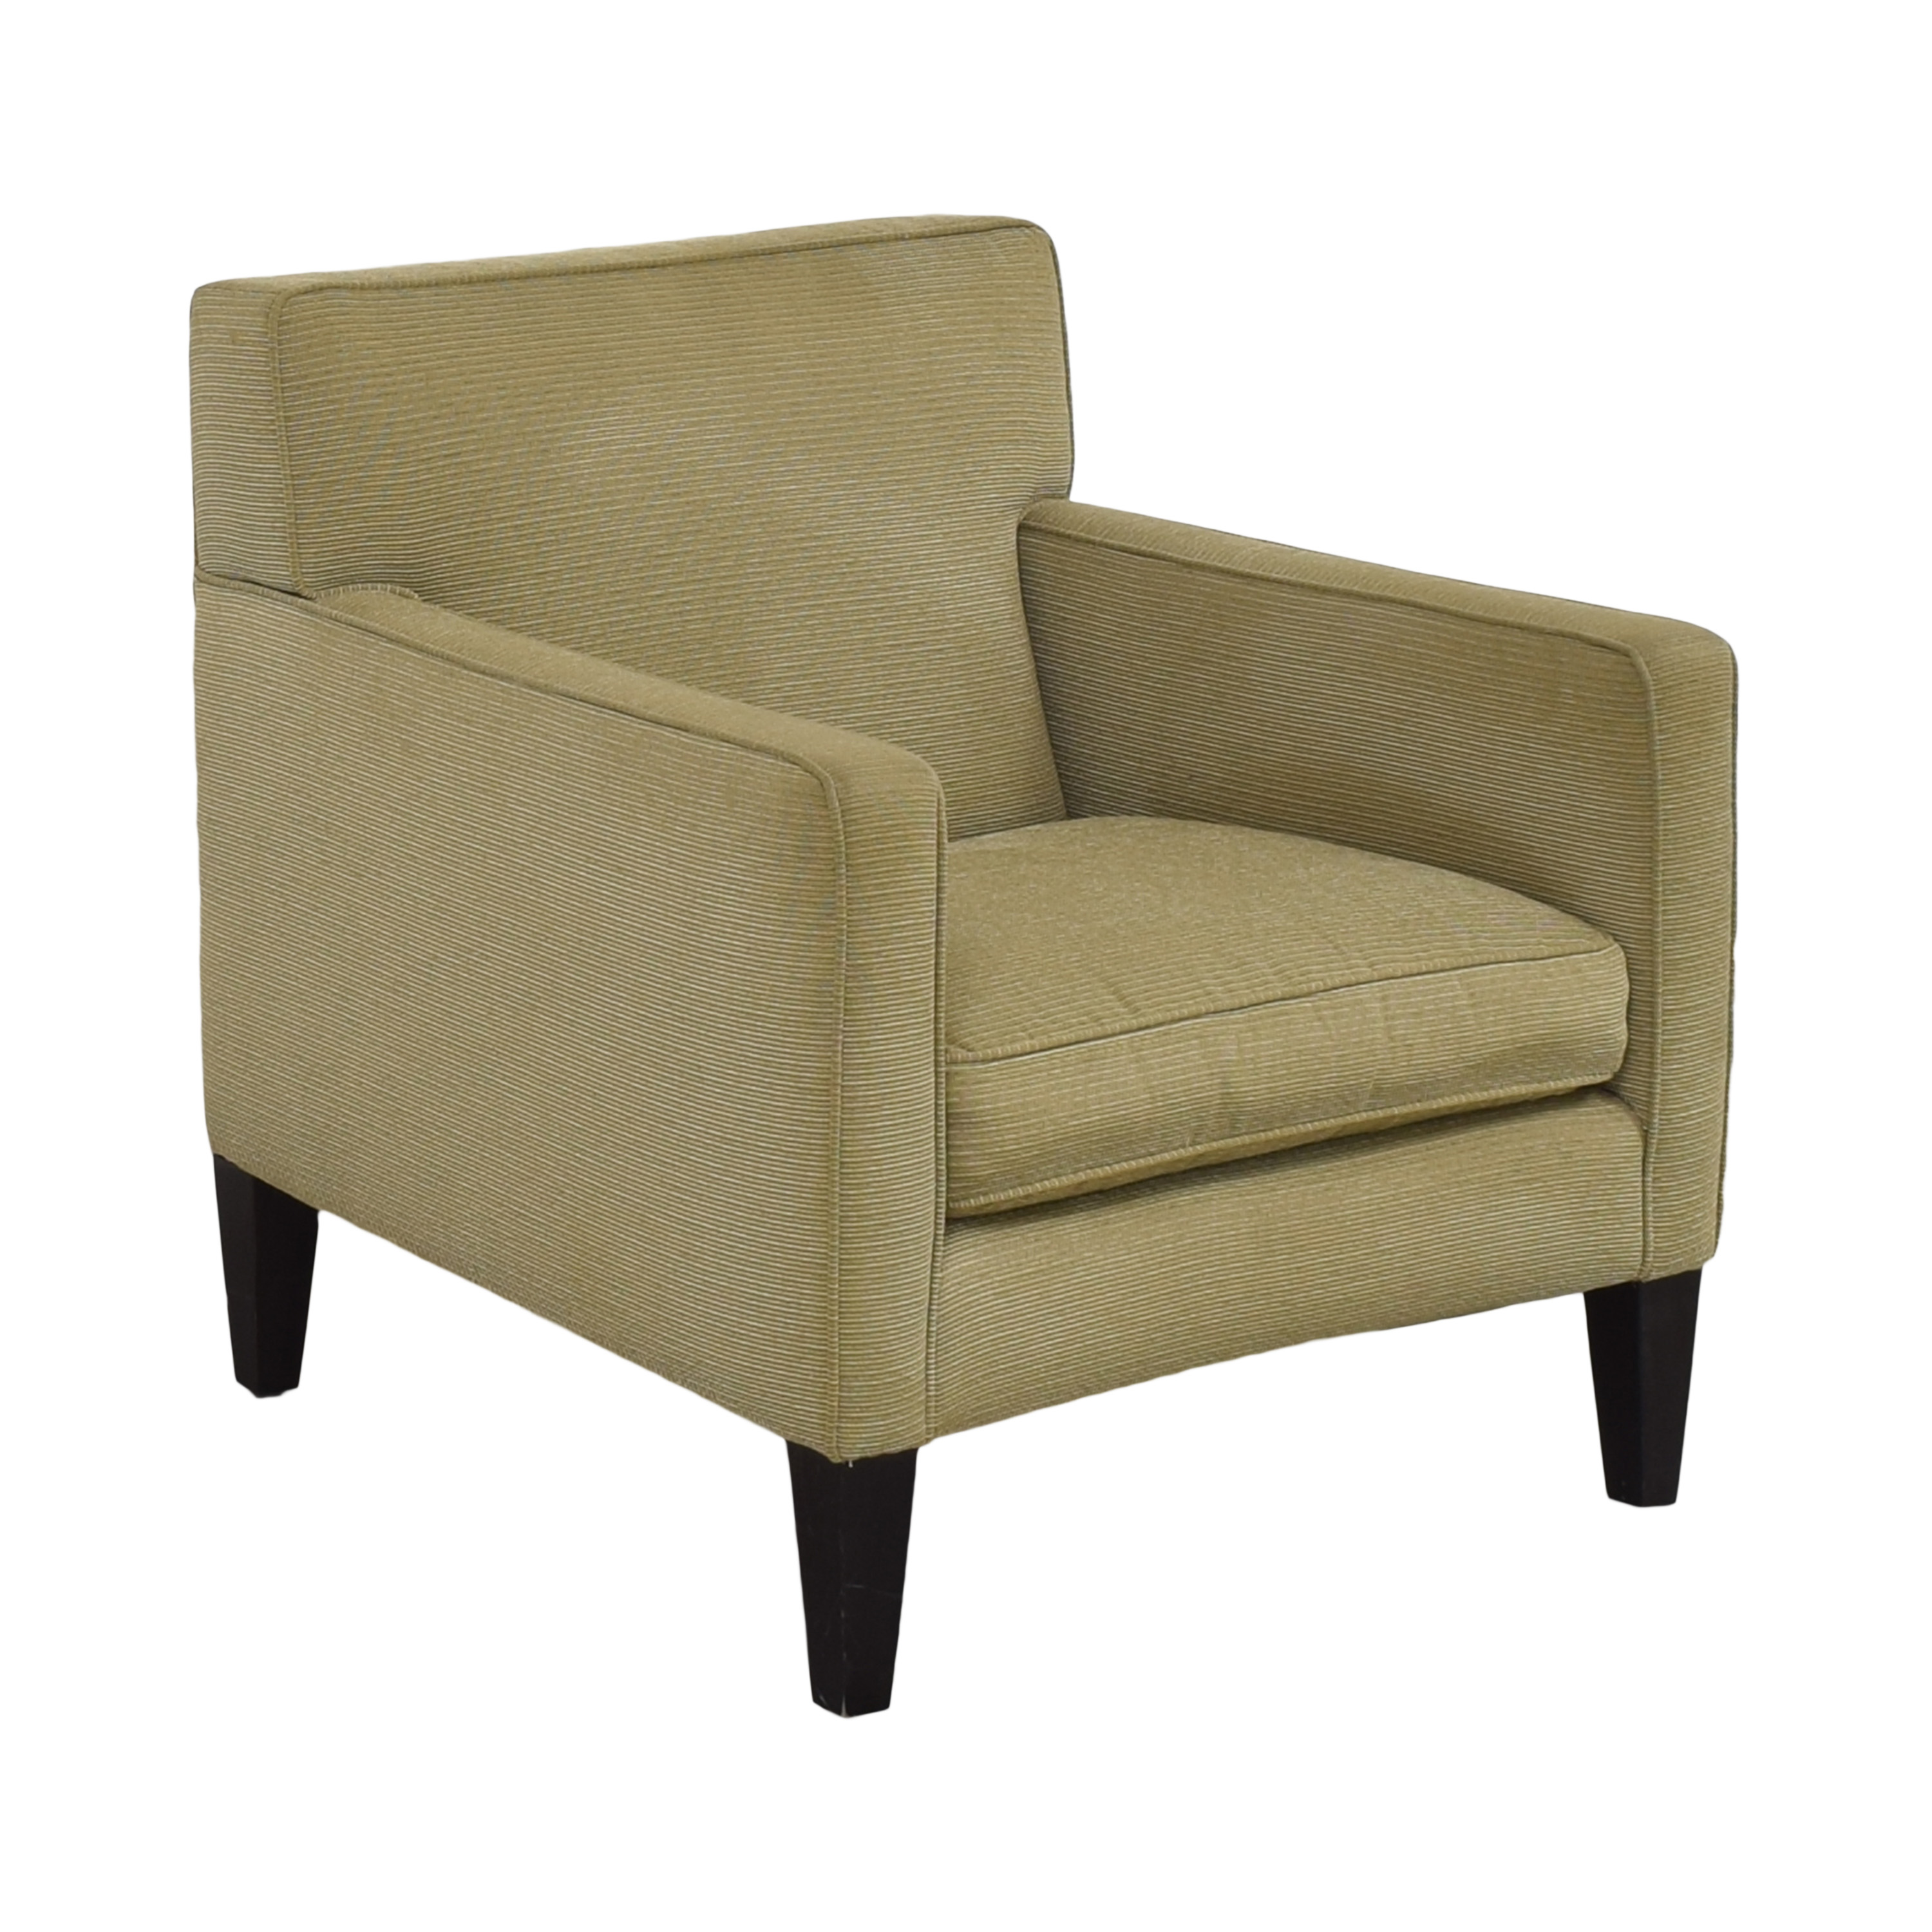 Crate & Barrel Crate & Barrel Rochelle Chair for sale